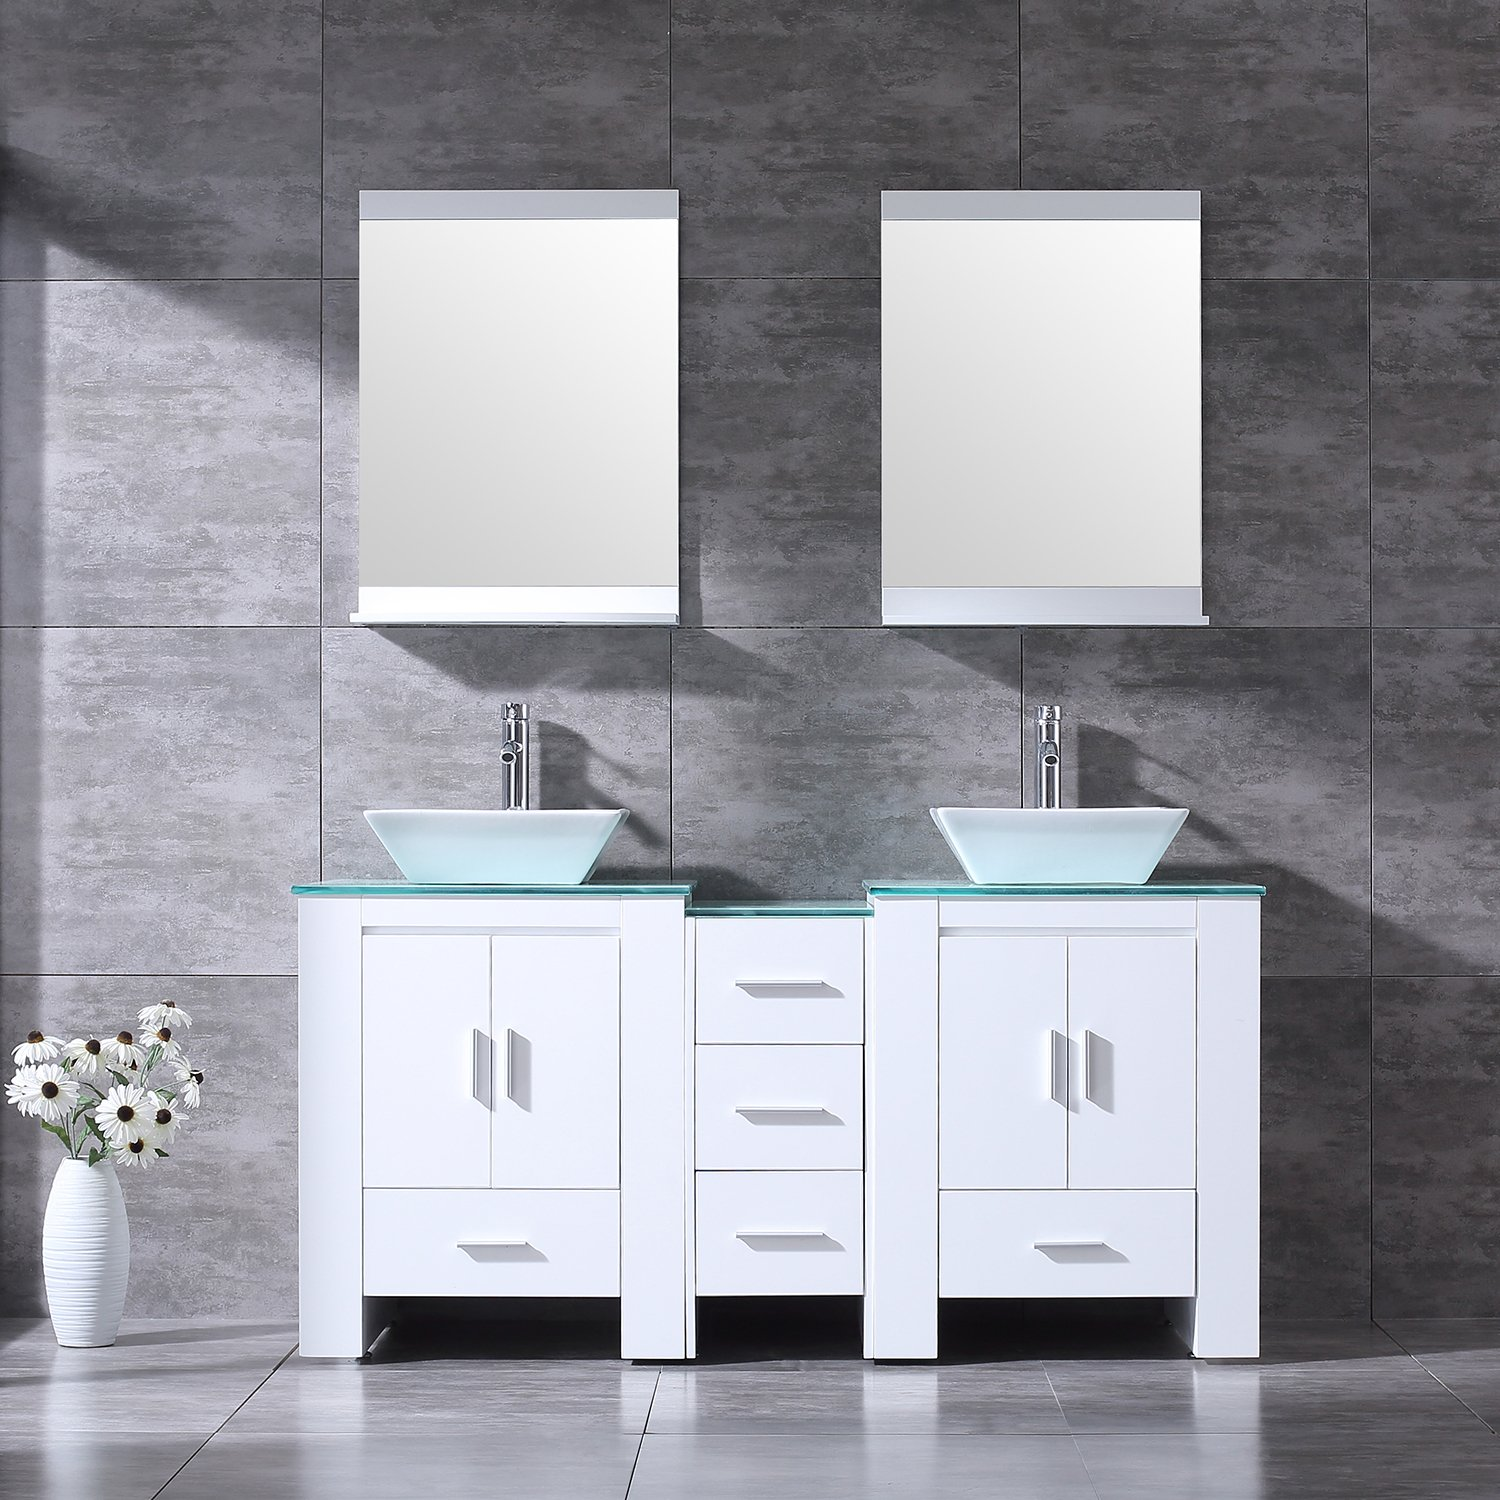 "BATHJOY 60"" White Bathroom Double Wood Vanity Cabinet with Ceramic Vessel Sink and Mirrors Faucet Drain Combo by BATHJOY"